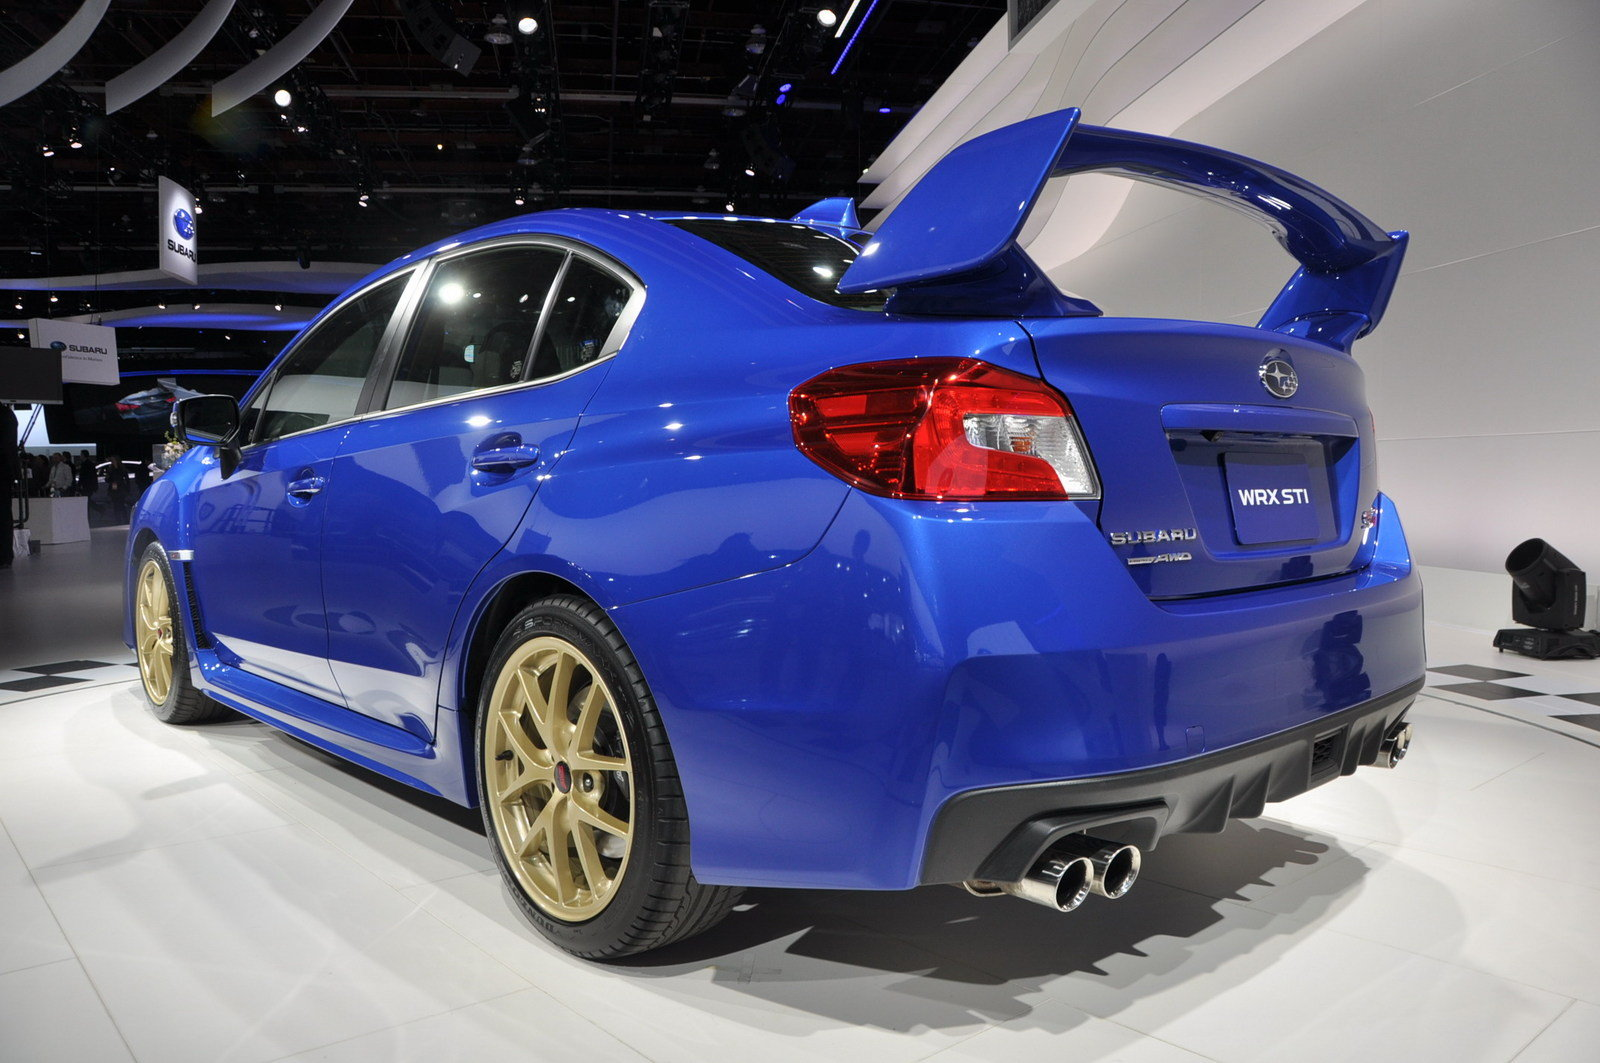 2014 subaru wrx 2 5 turbo 0 60 mph specs autos post. Black Bedroom Furniture Sets. Home Design Ideas